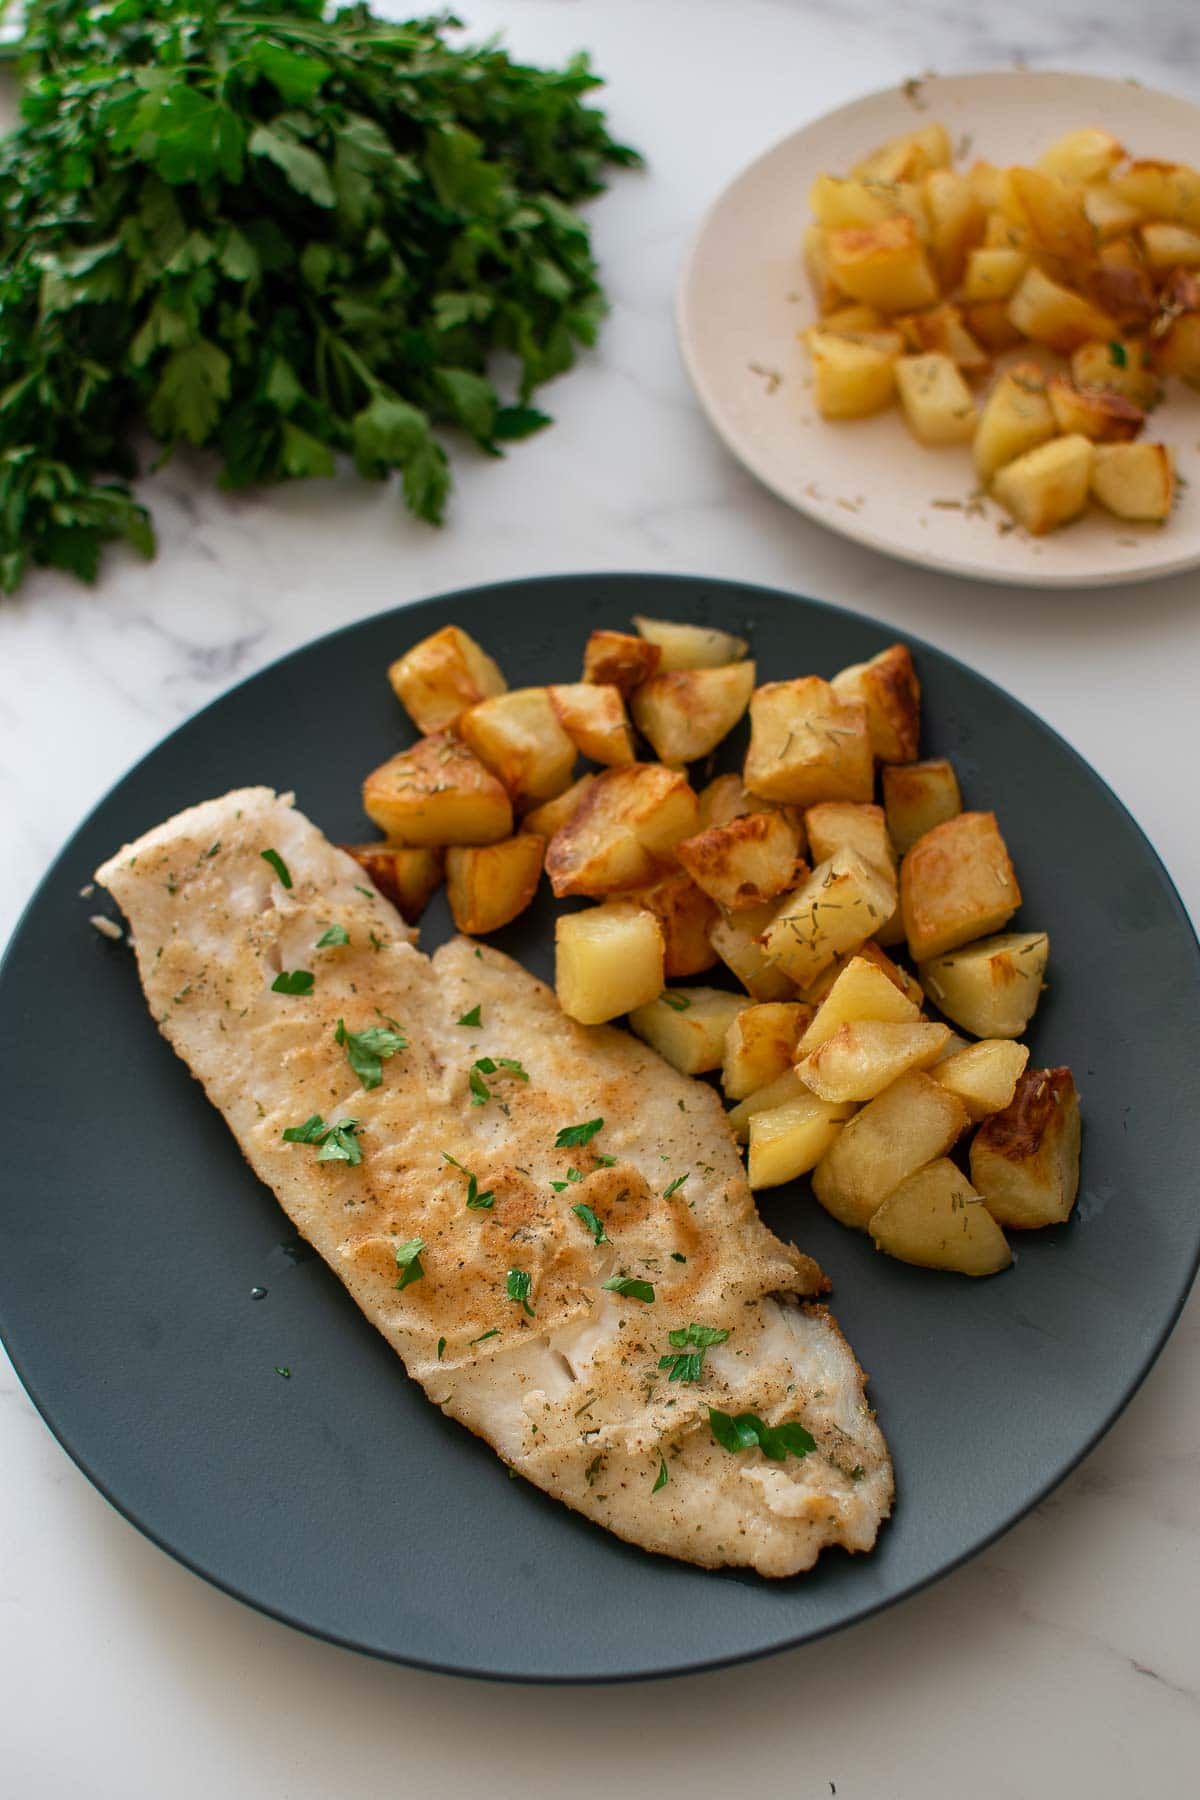 Pan fried hake and Parmentier potatoes on a plate.